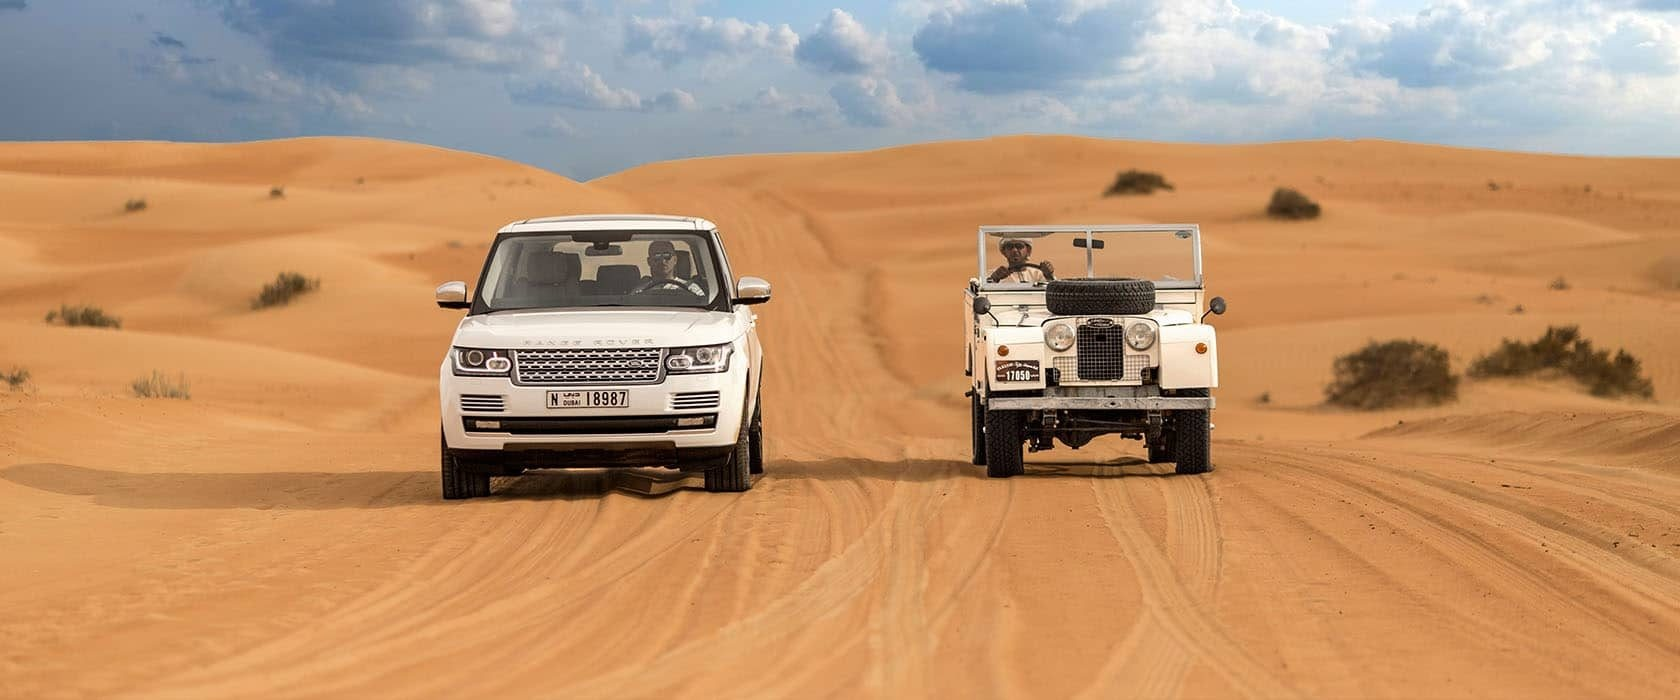 Daring activities and entertainment at Dubai desert safari